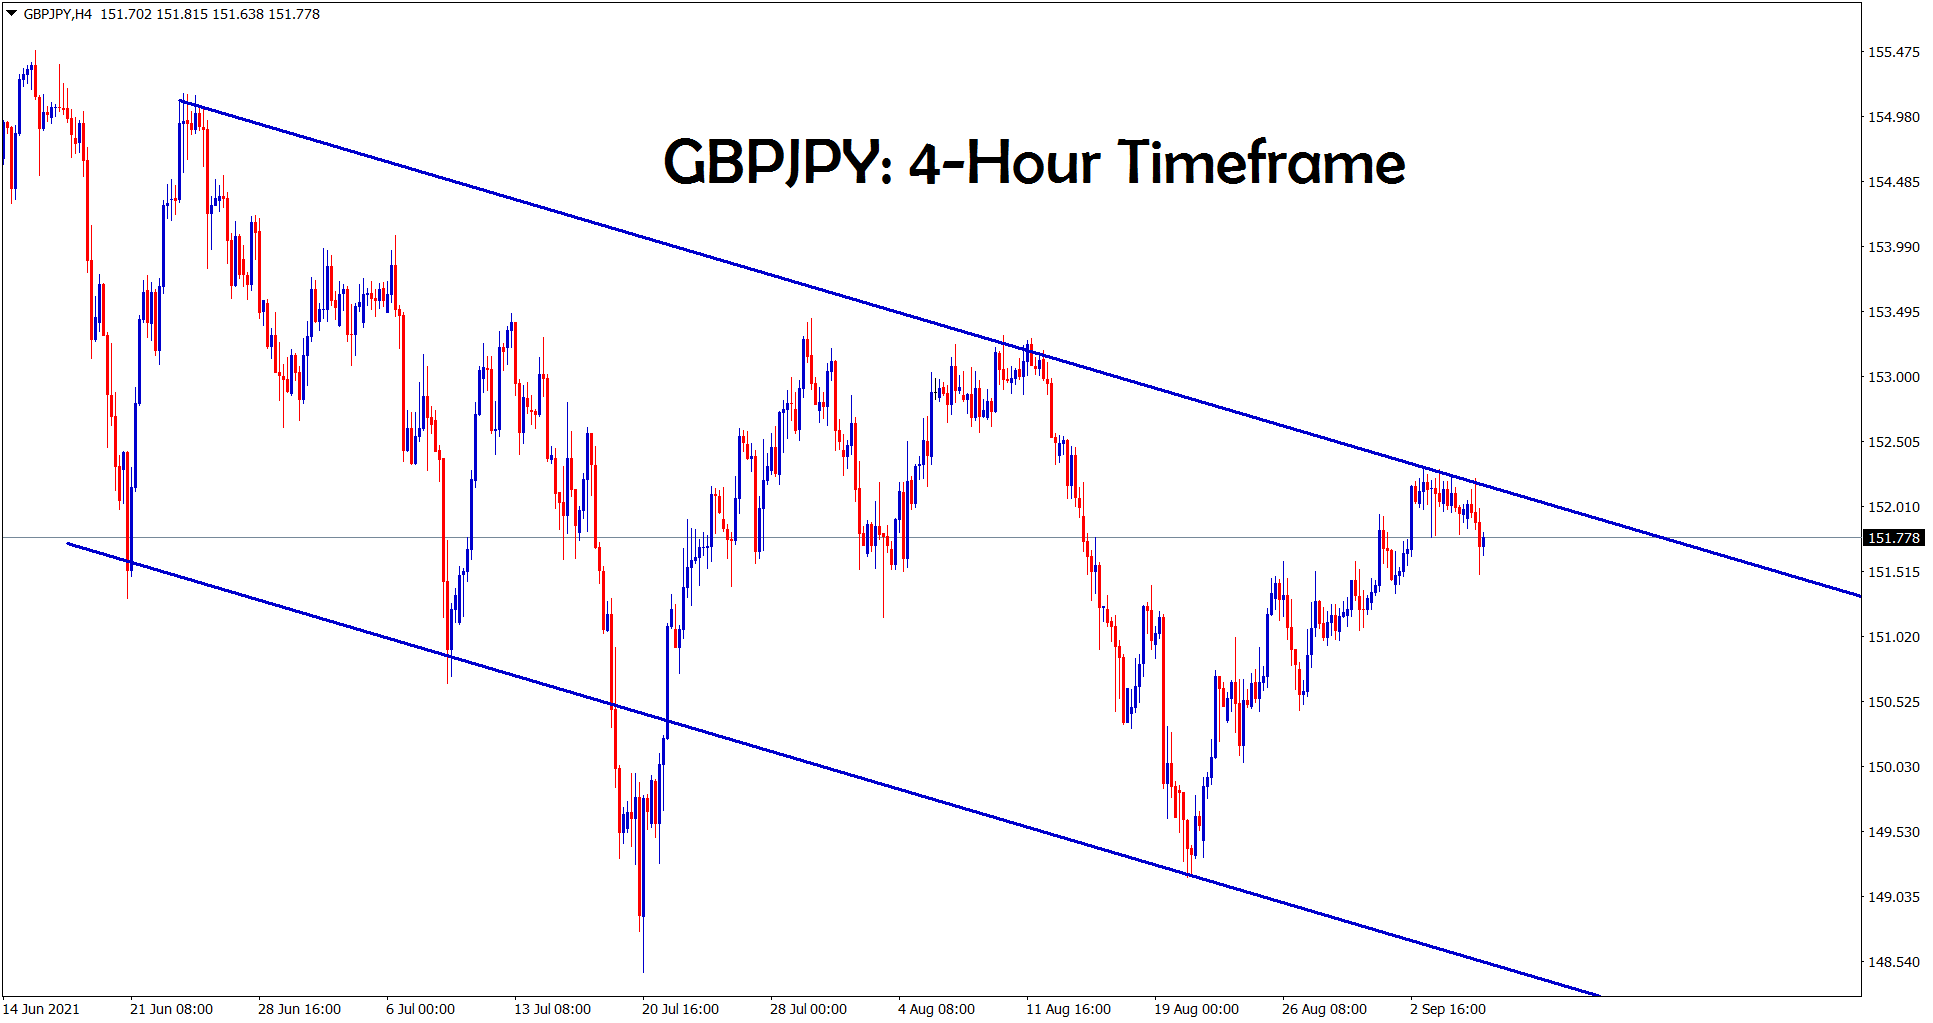 GBPJPY is consolidating at the lower high area of a downtrend line